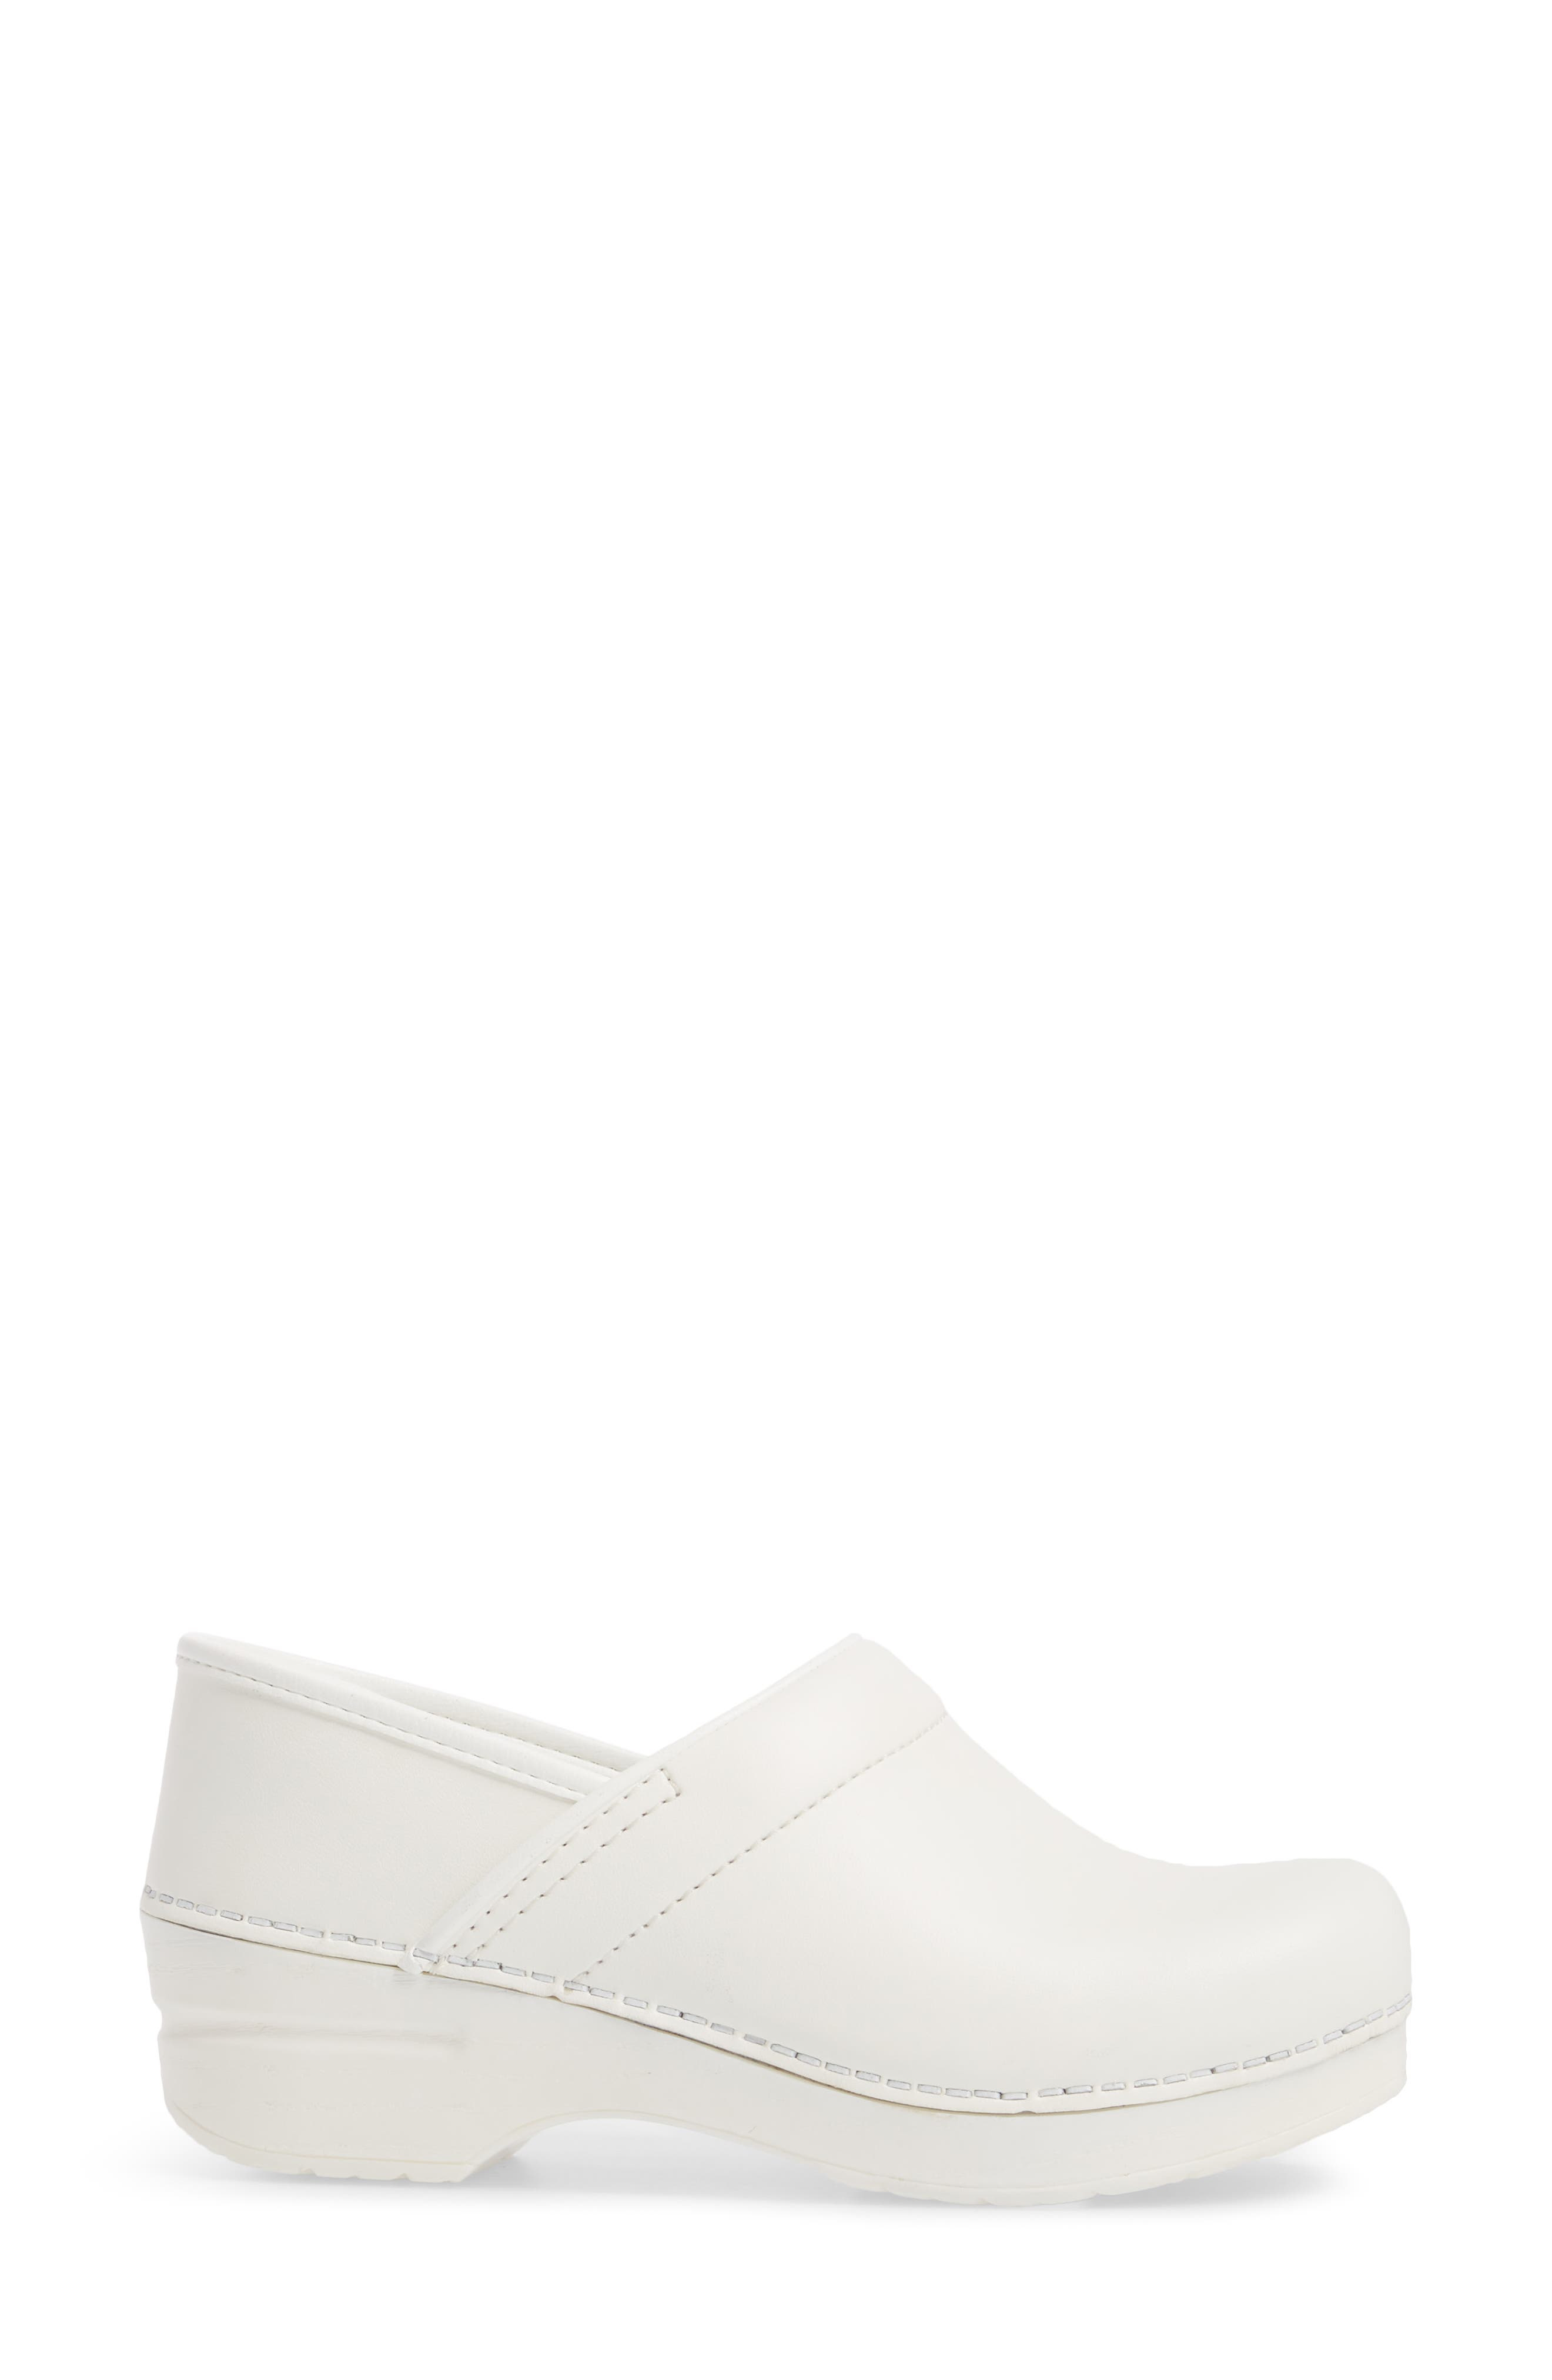 Wide Pro Clog,                             Alternate thumbnail 3, color,                             White Leather